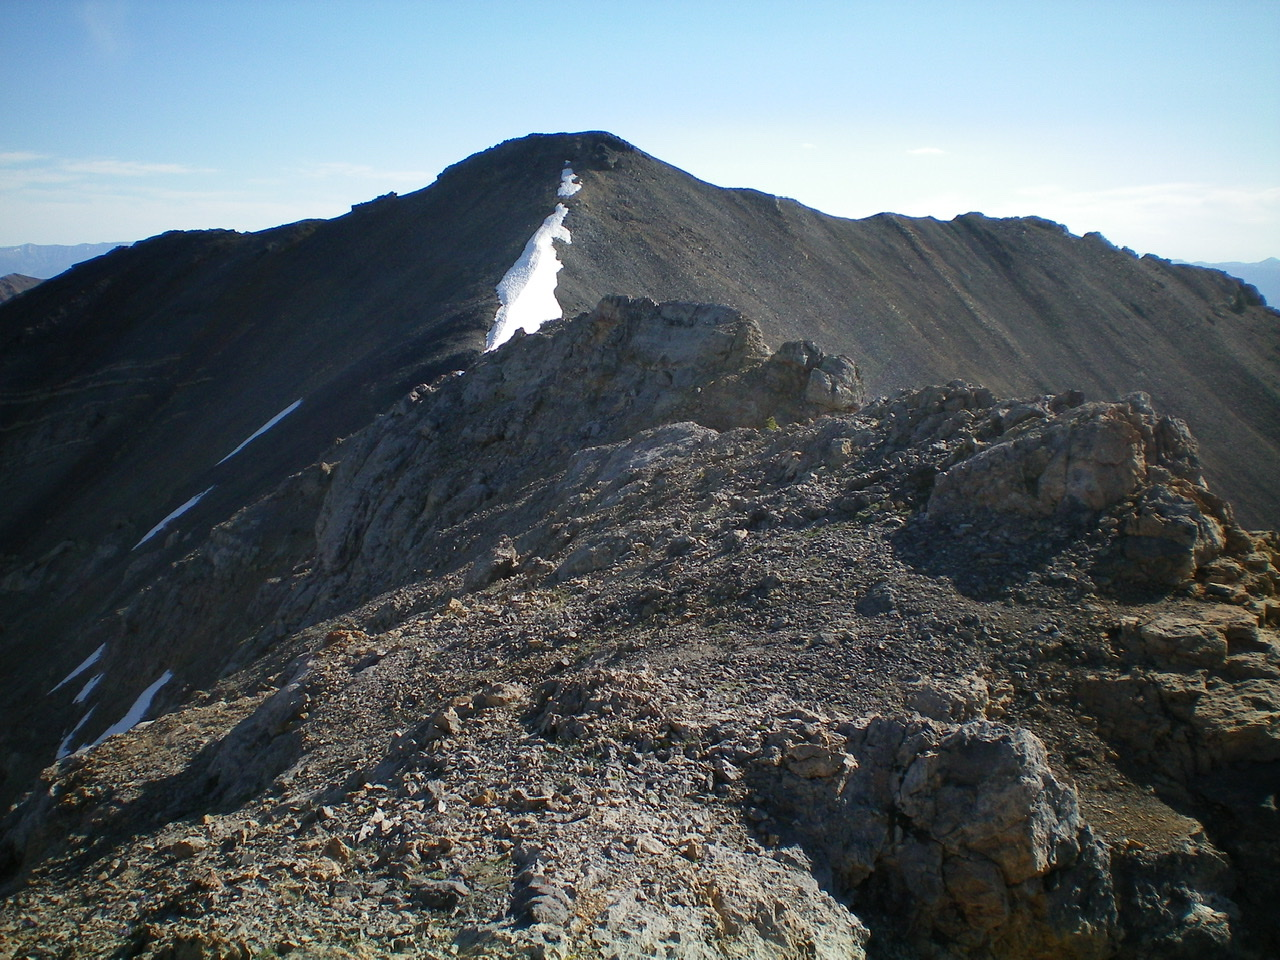 The rocky Southwest Summit area (foreground) with the true summit of Medusa in the background. Livingston Douglas Photo